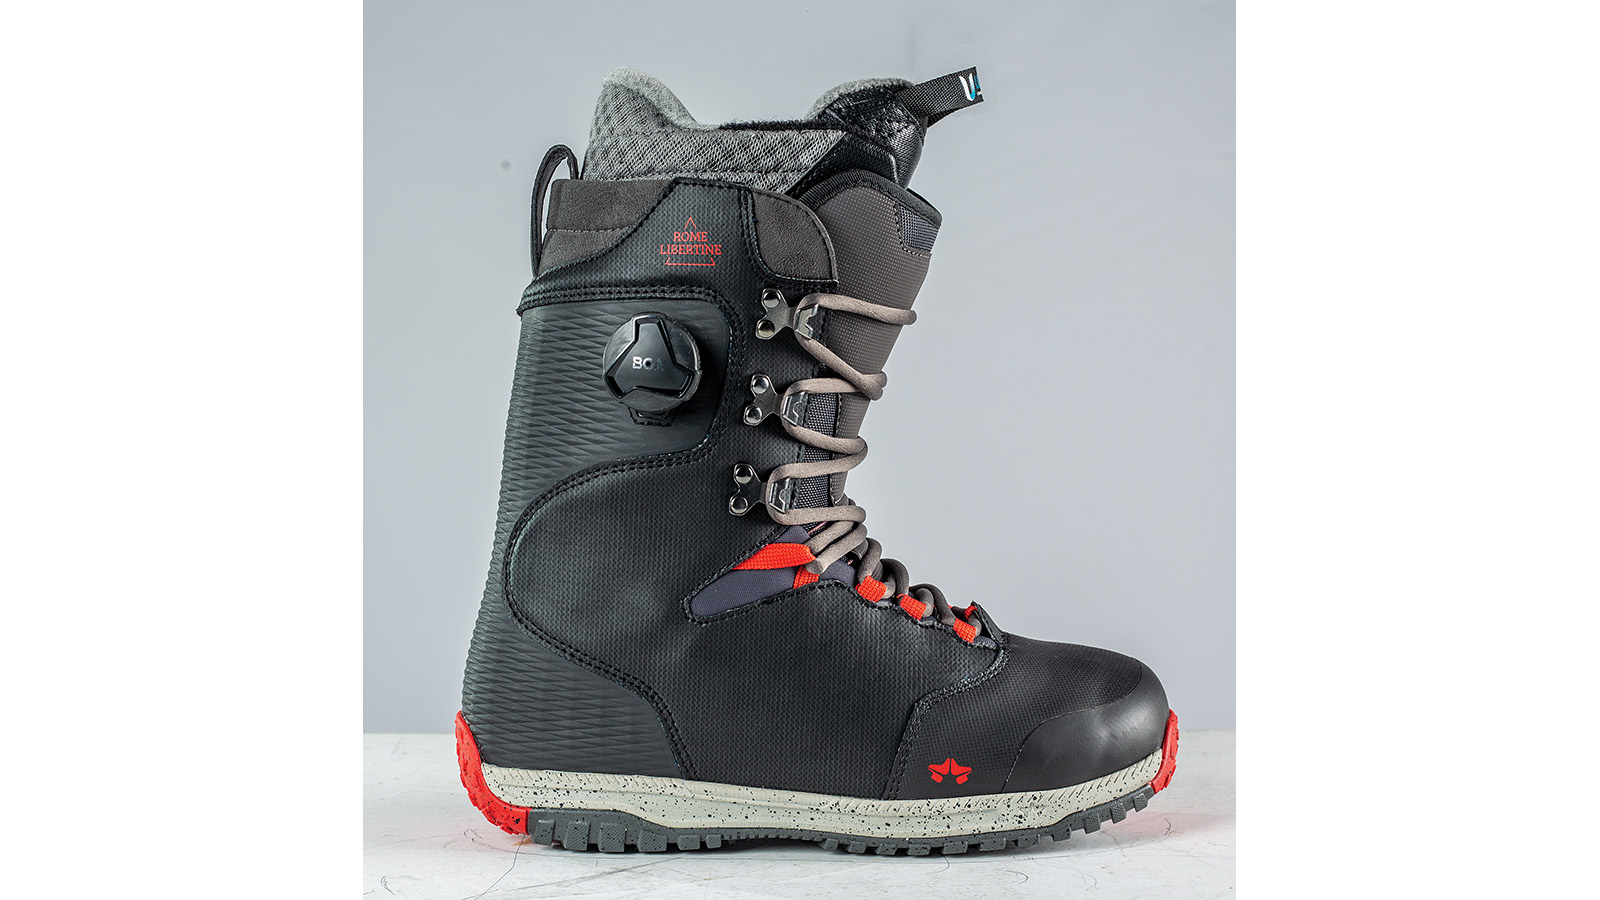 Rome FW20/21 Snowboard Boots